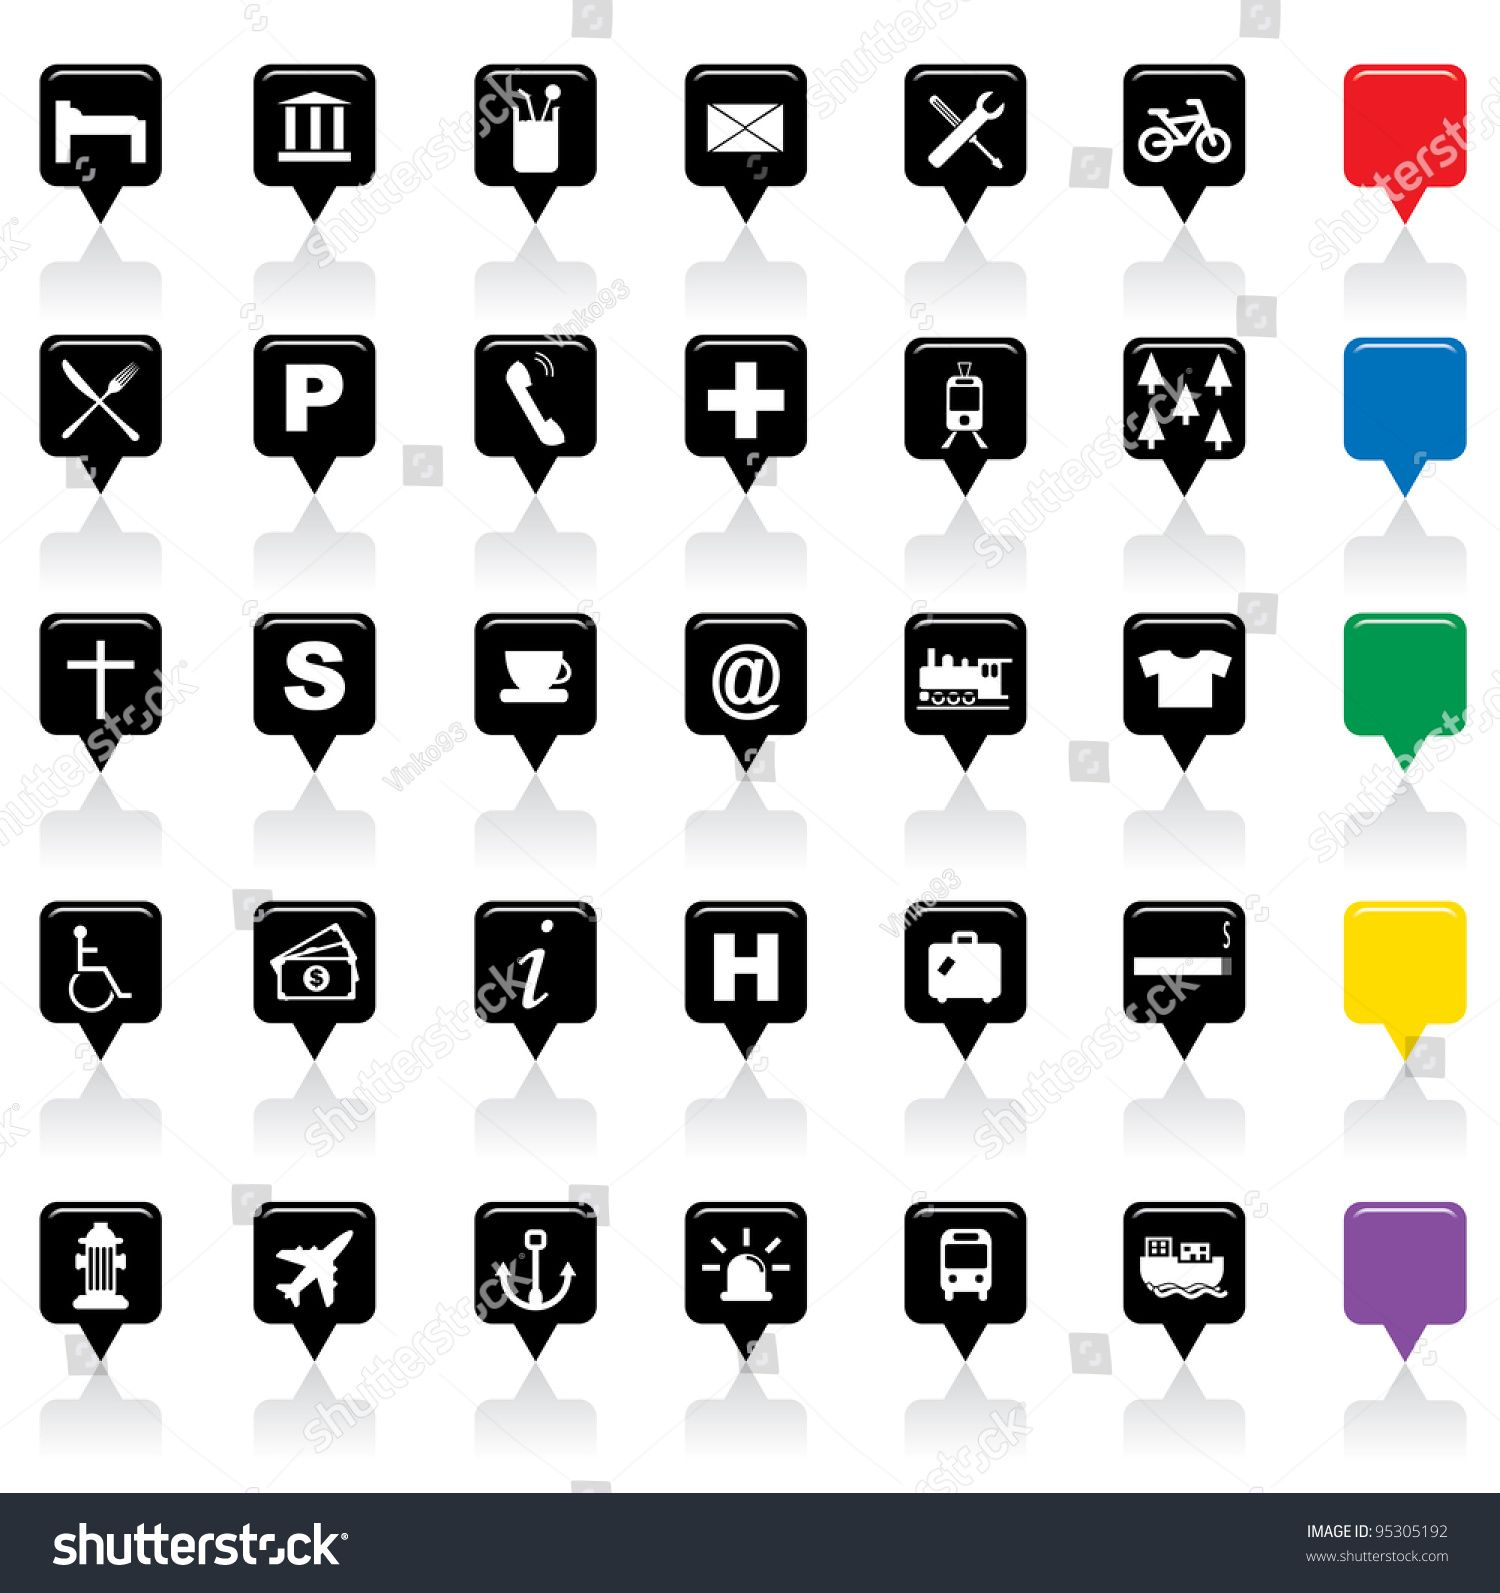 Vector Illustration Of City Map Icons Sponsored Spon Illustration Vector City Icons With Images Map Icons City Map Vector Illustration